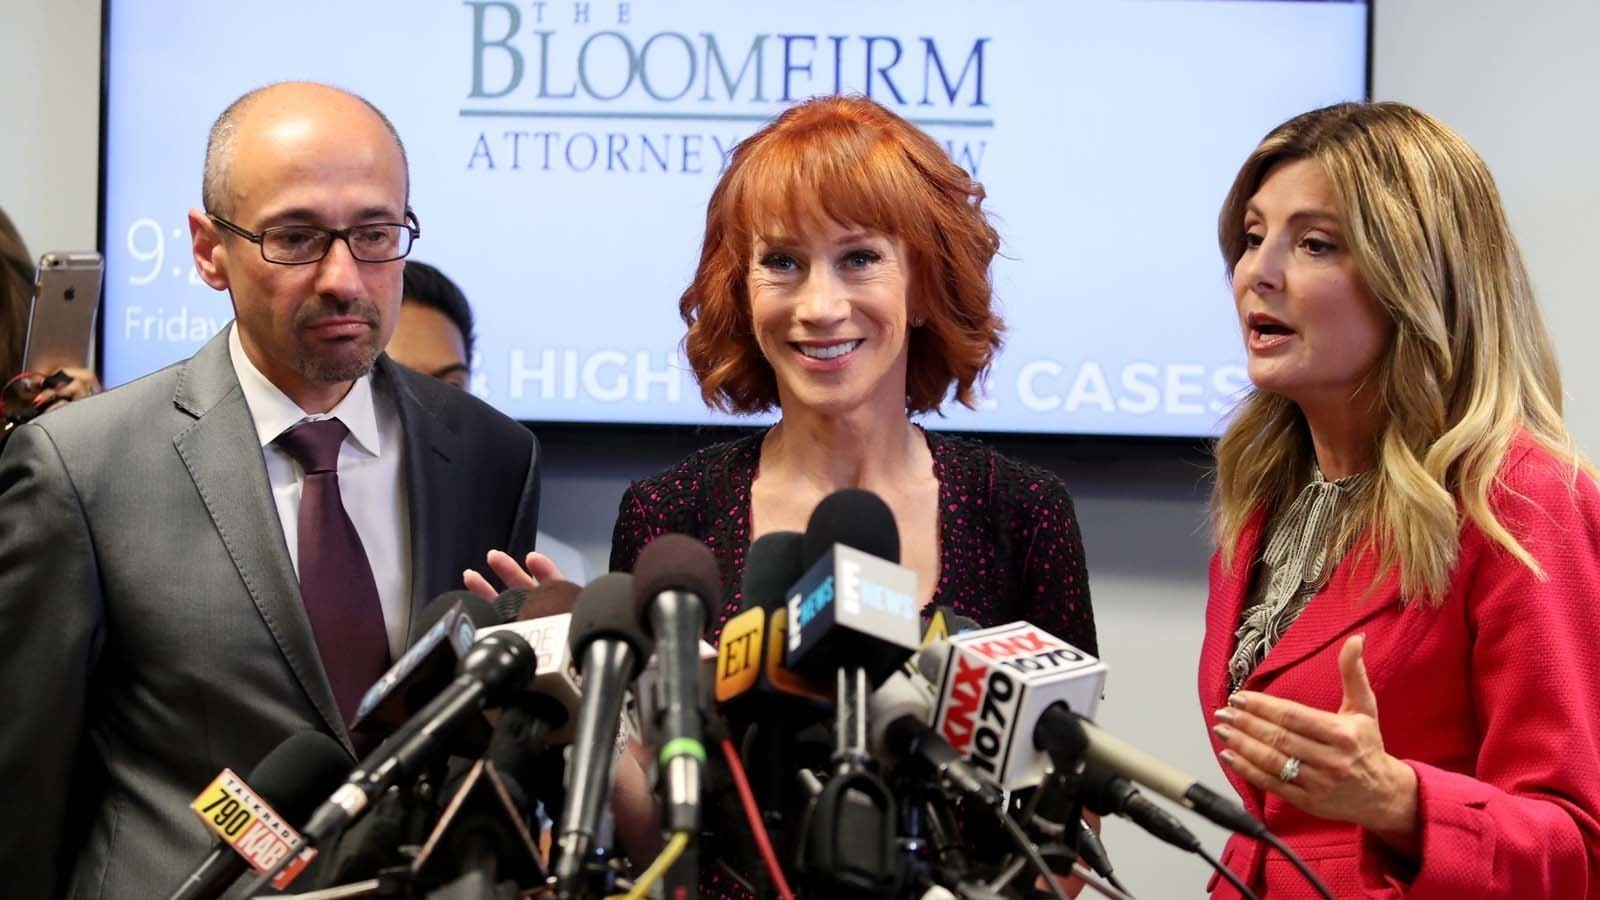 Here's what a defiant Kathy Griffin said at her Trump news conference. (Spoiler: She's not backing down)